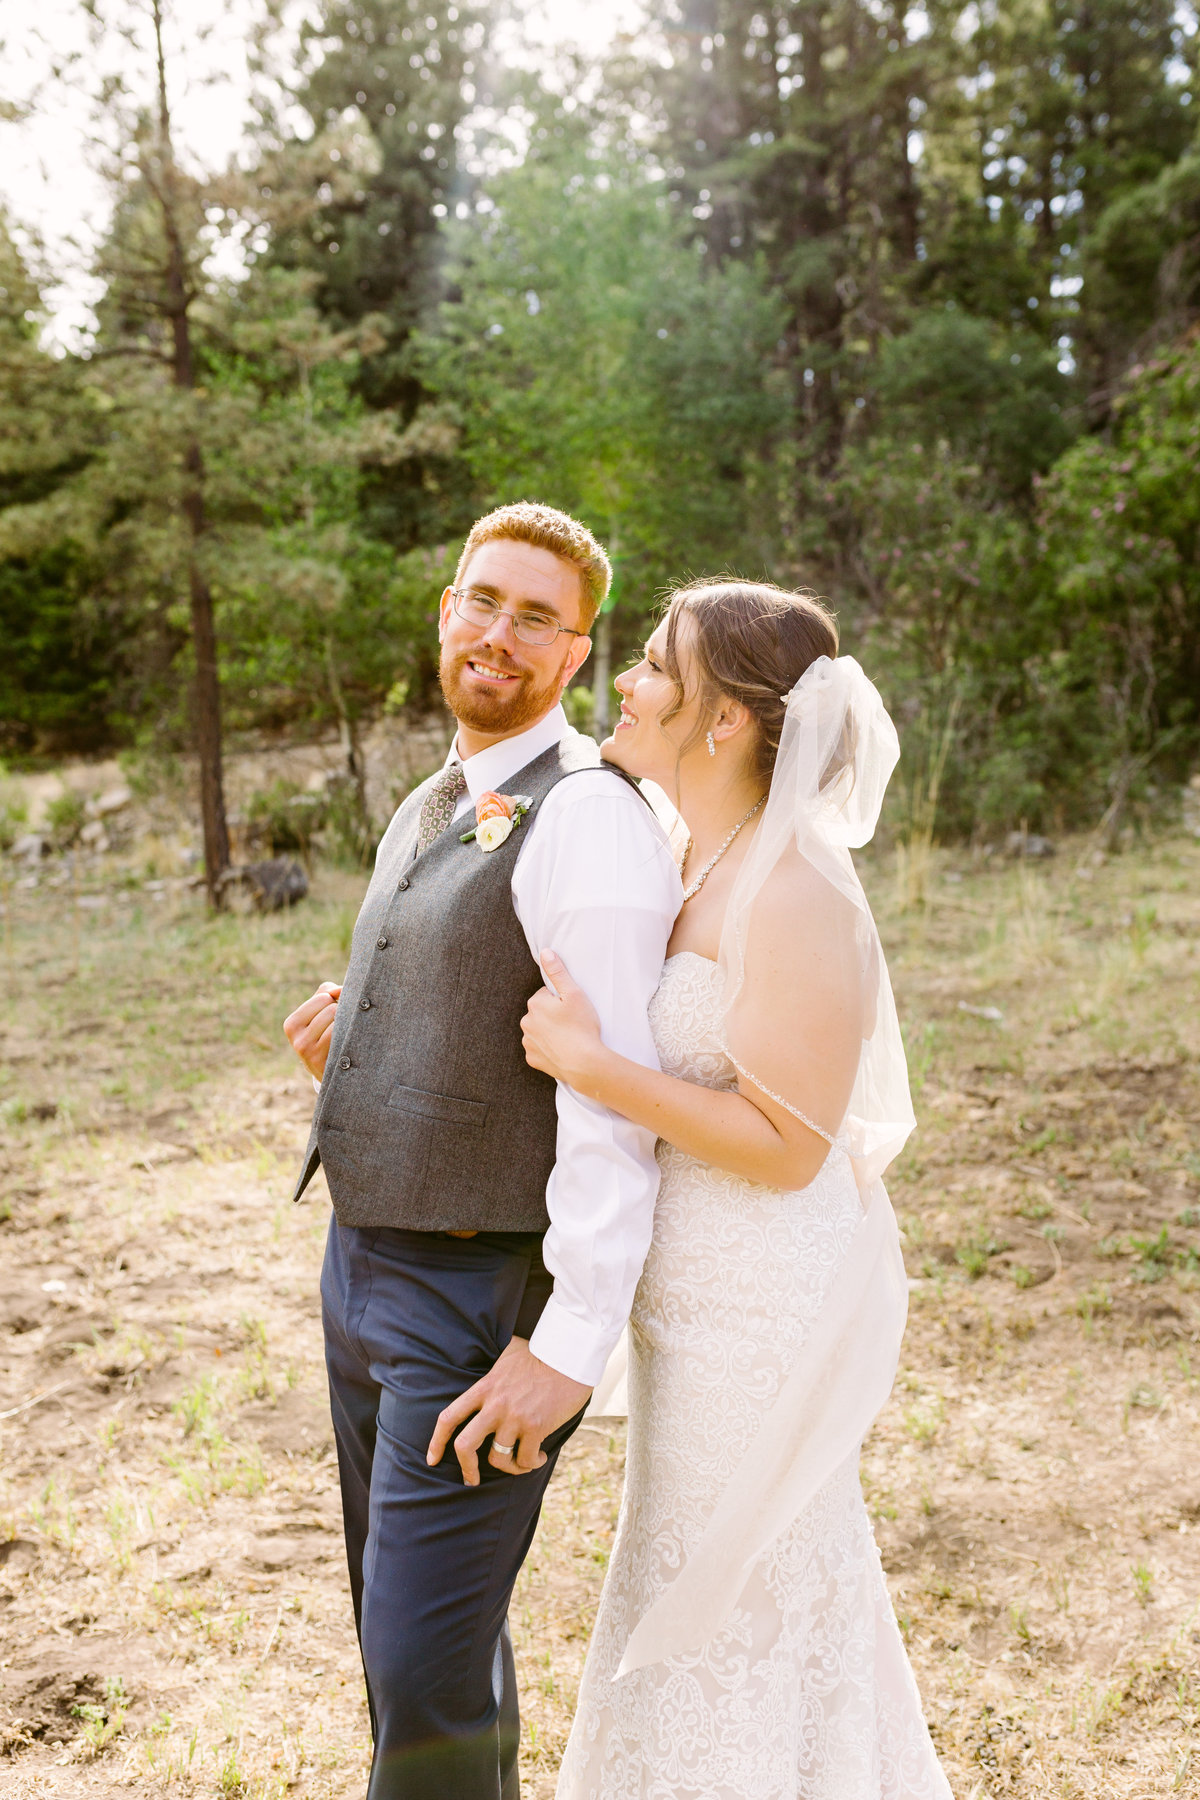 Albuquerque Outdoor Country Wedding Photographer_www.tylerbrooke.com_Kate Kauffman-28